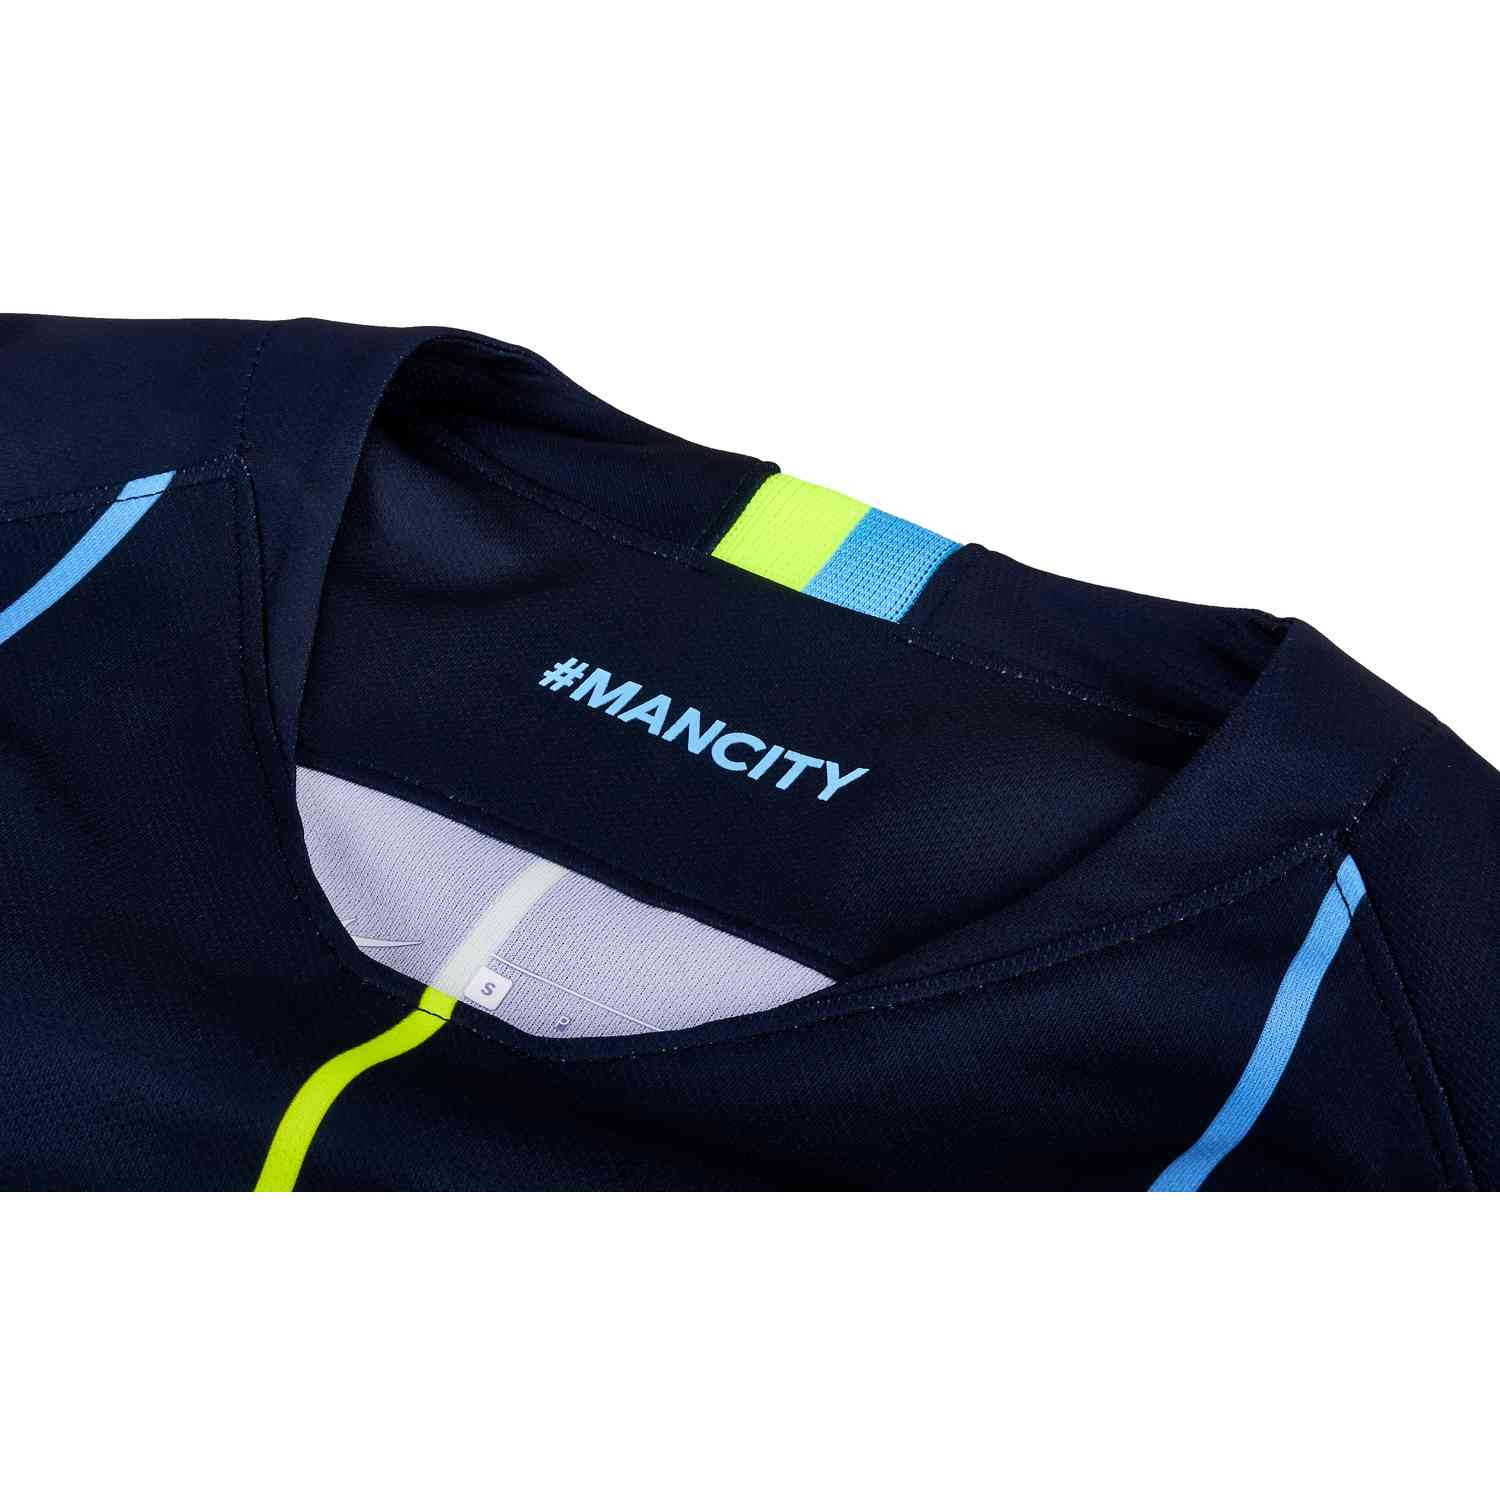 outlet store 39328 d2276 2018/19 Kids Nike Kevin De Bruyne Manchester City Away ...